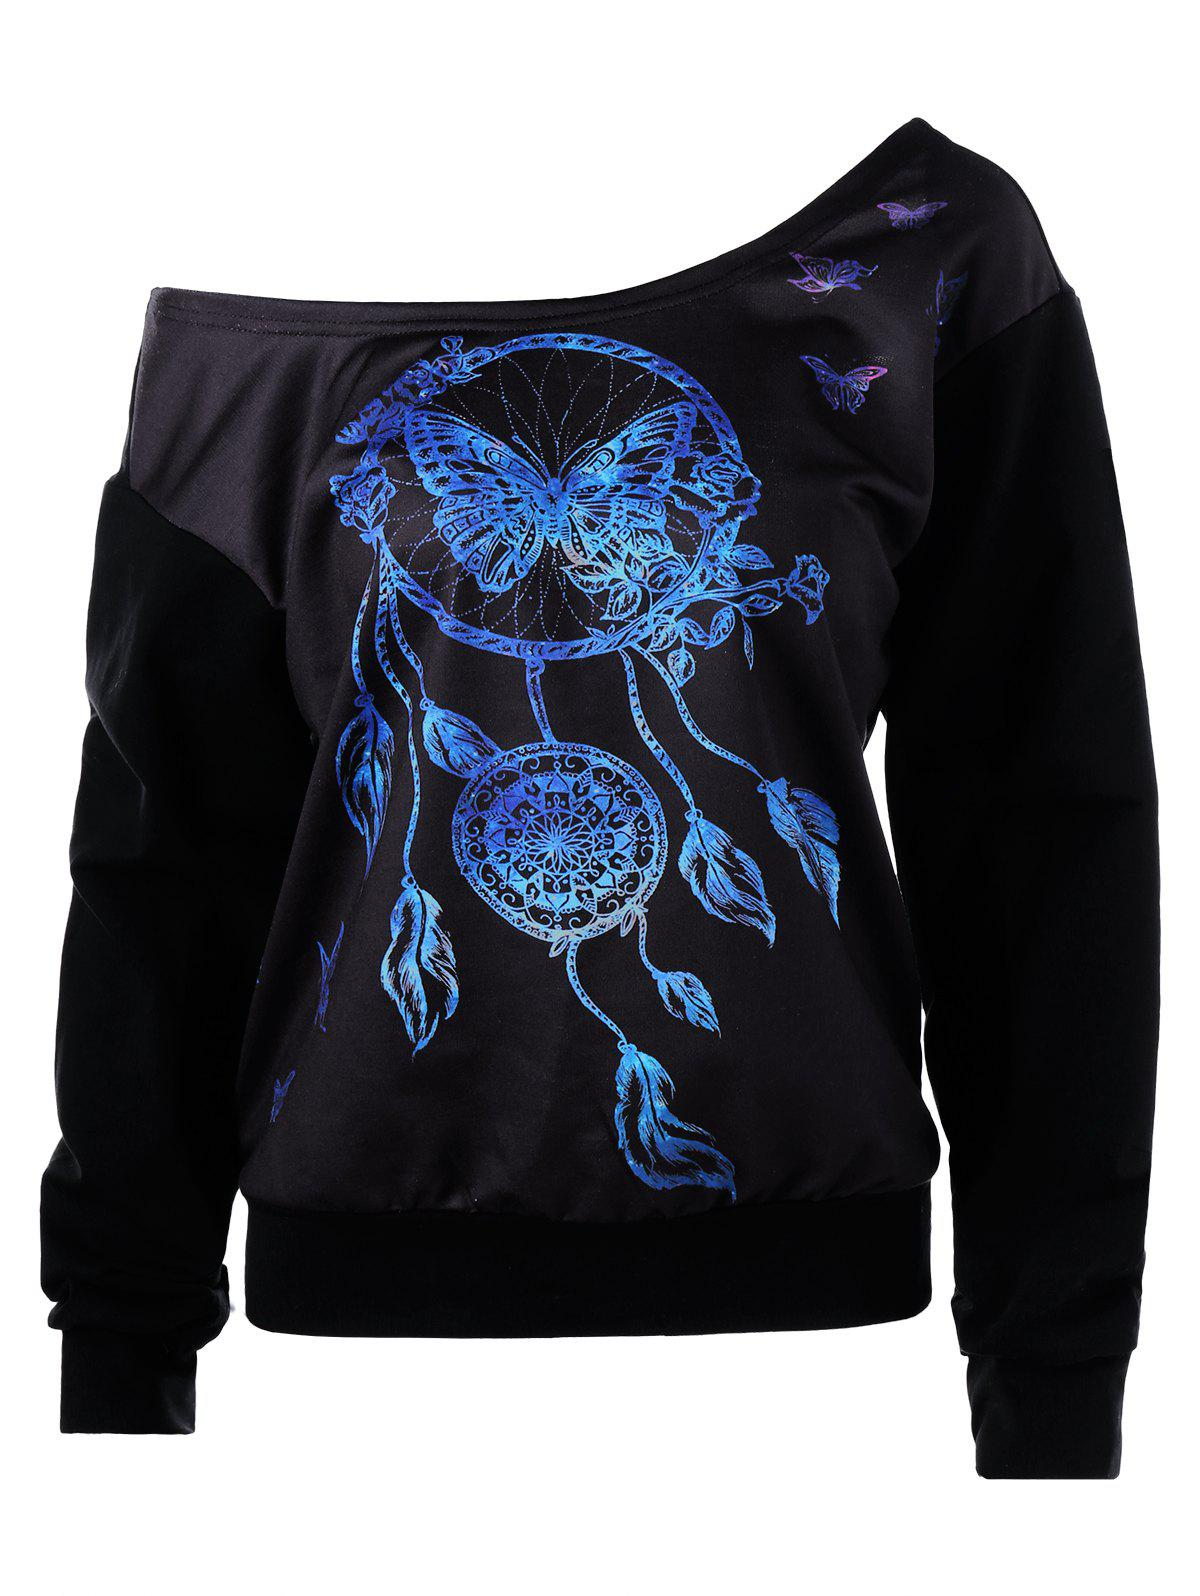 3D Butterfly Print Skew Neck SweatshirtWOMEN<br><br>Size: L; Color: BLACK; Material: Polyester,Spandex; Shirt Length: Regular; Sleeve Length: Full; Style: Fashion; Pattern Style: Print; Season: Fall,Spring; Weight: 0.4000kg; Package Contents: 1 x Sweatshirt;